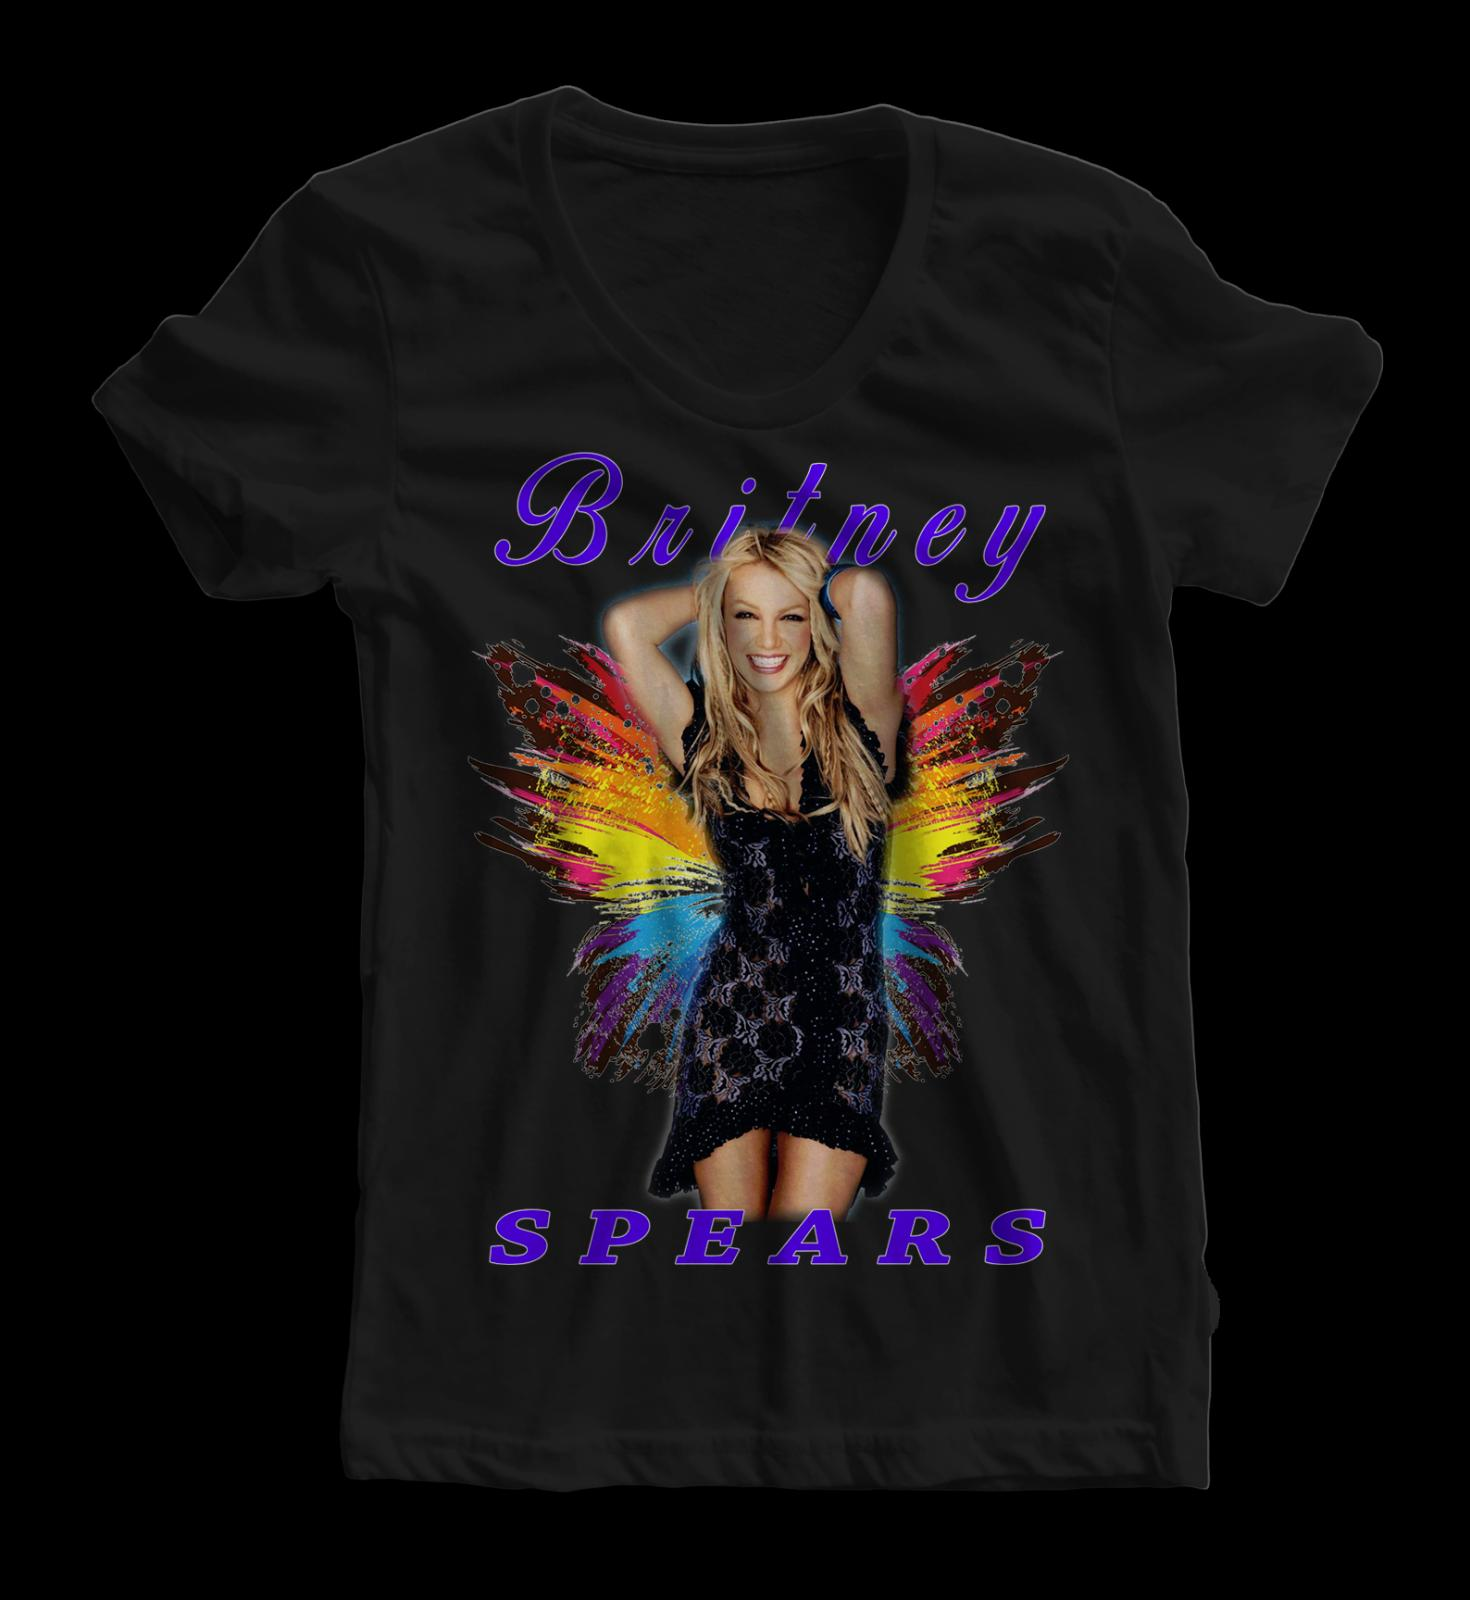 Britney Spears Tour Concert Women Shirt Graphic Tee Custom Printing Funny  Unisex Casual Tee Top Buy T Shirt Designs Printing Tee Shirts From ... 93275a5d91